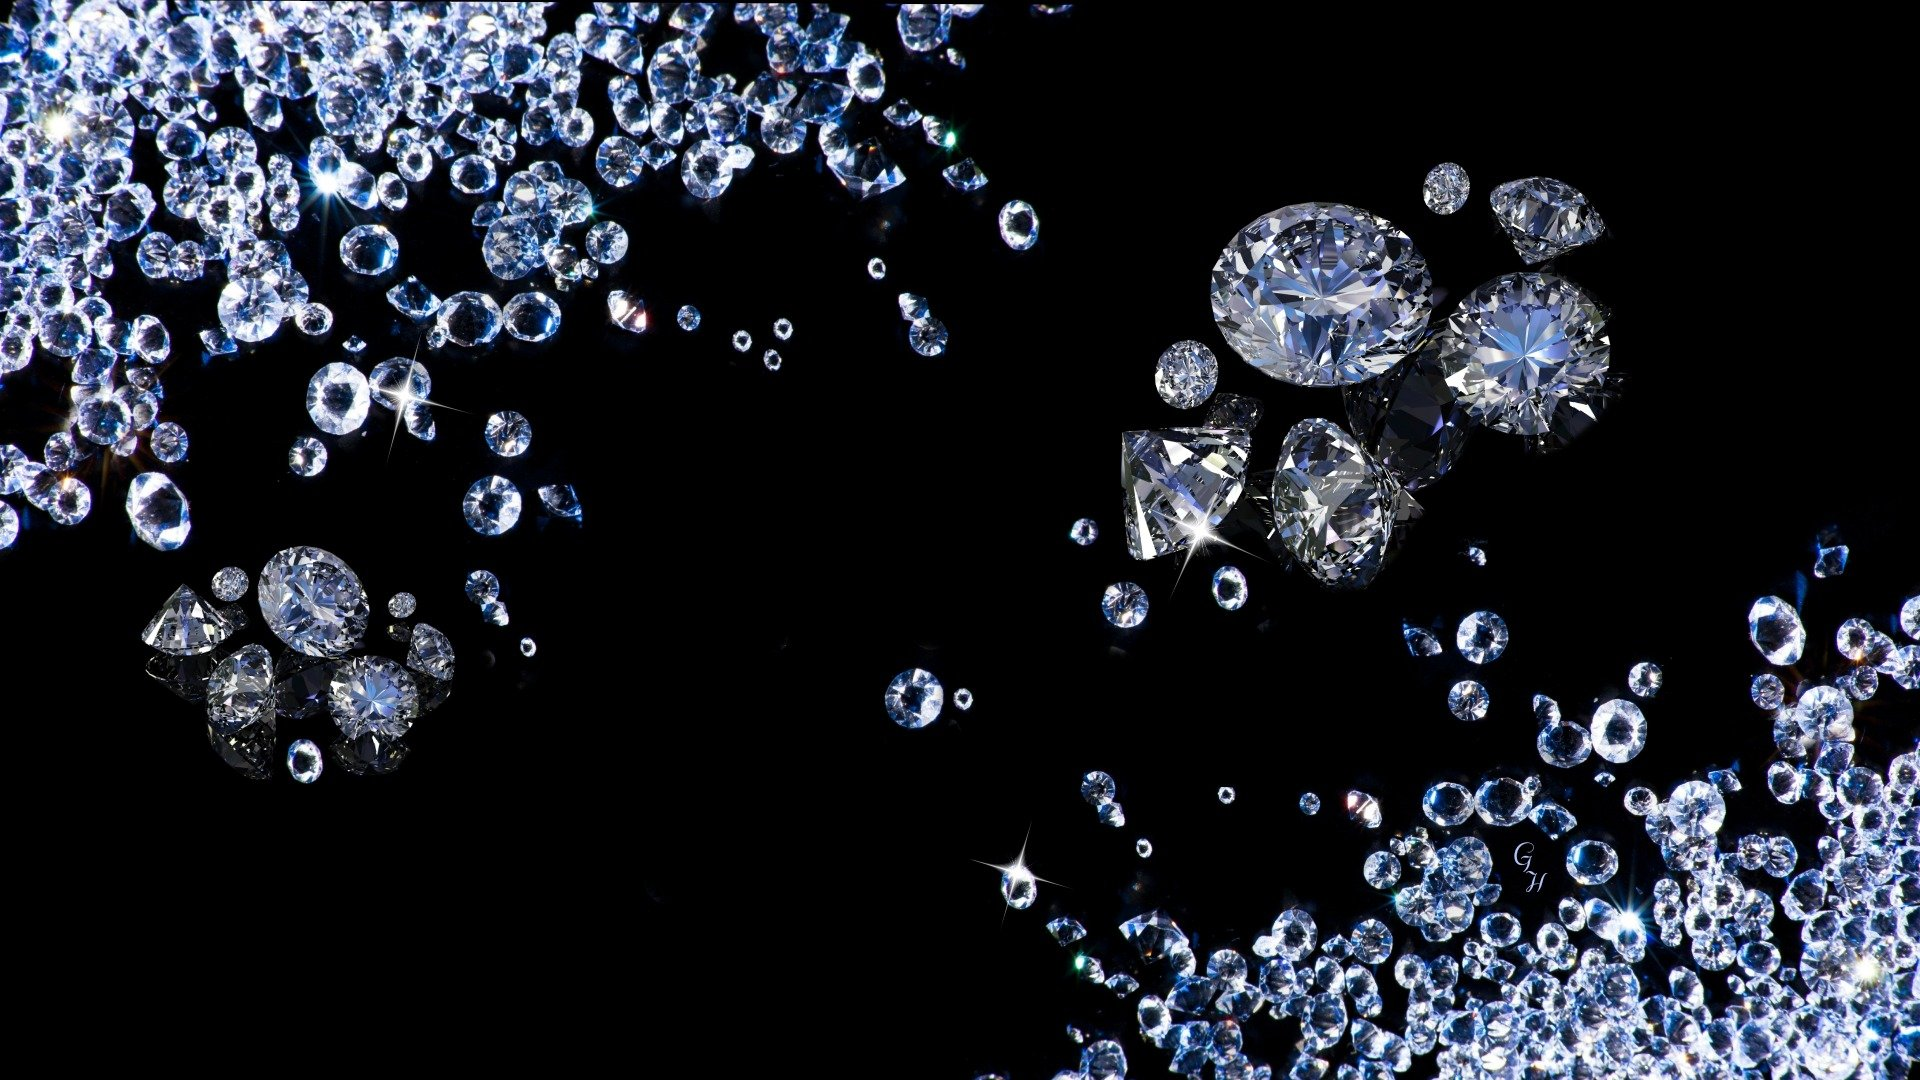 black beautiful stock reflections with jewel reflective a background on diamond image illustration dark sparkling sparkle photo